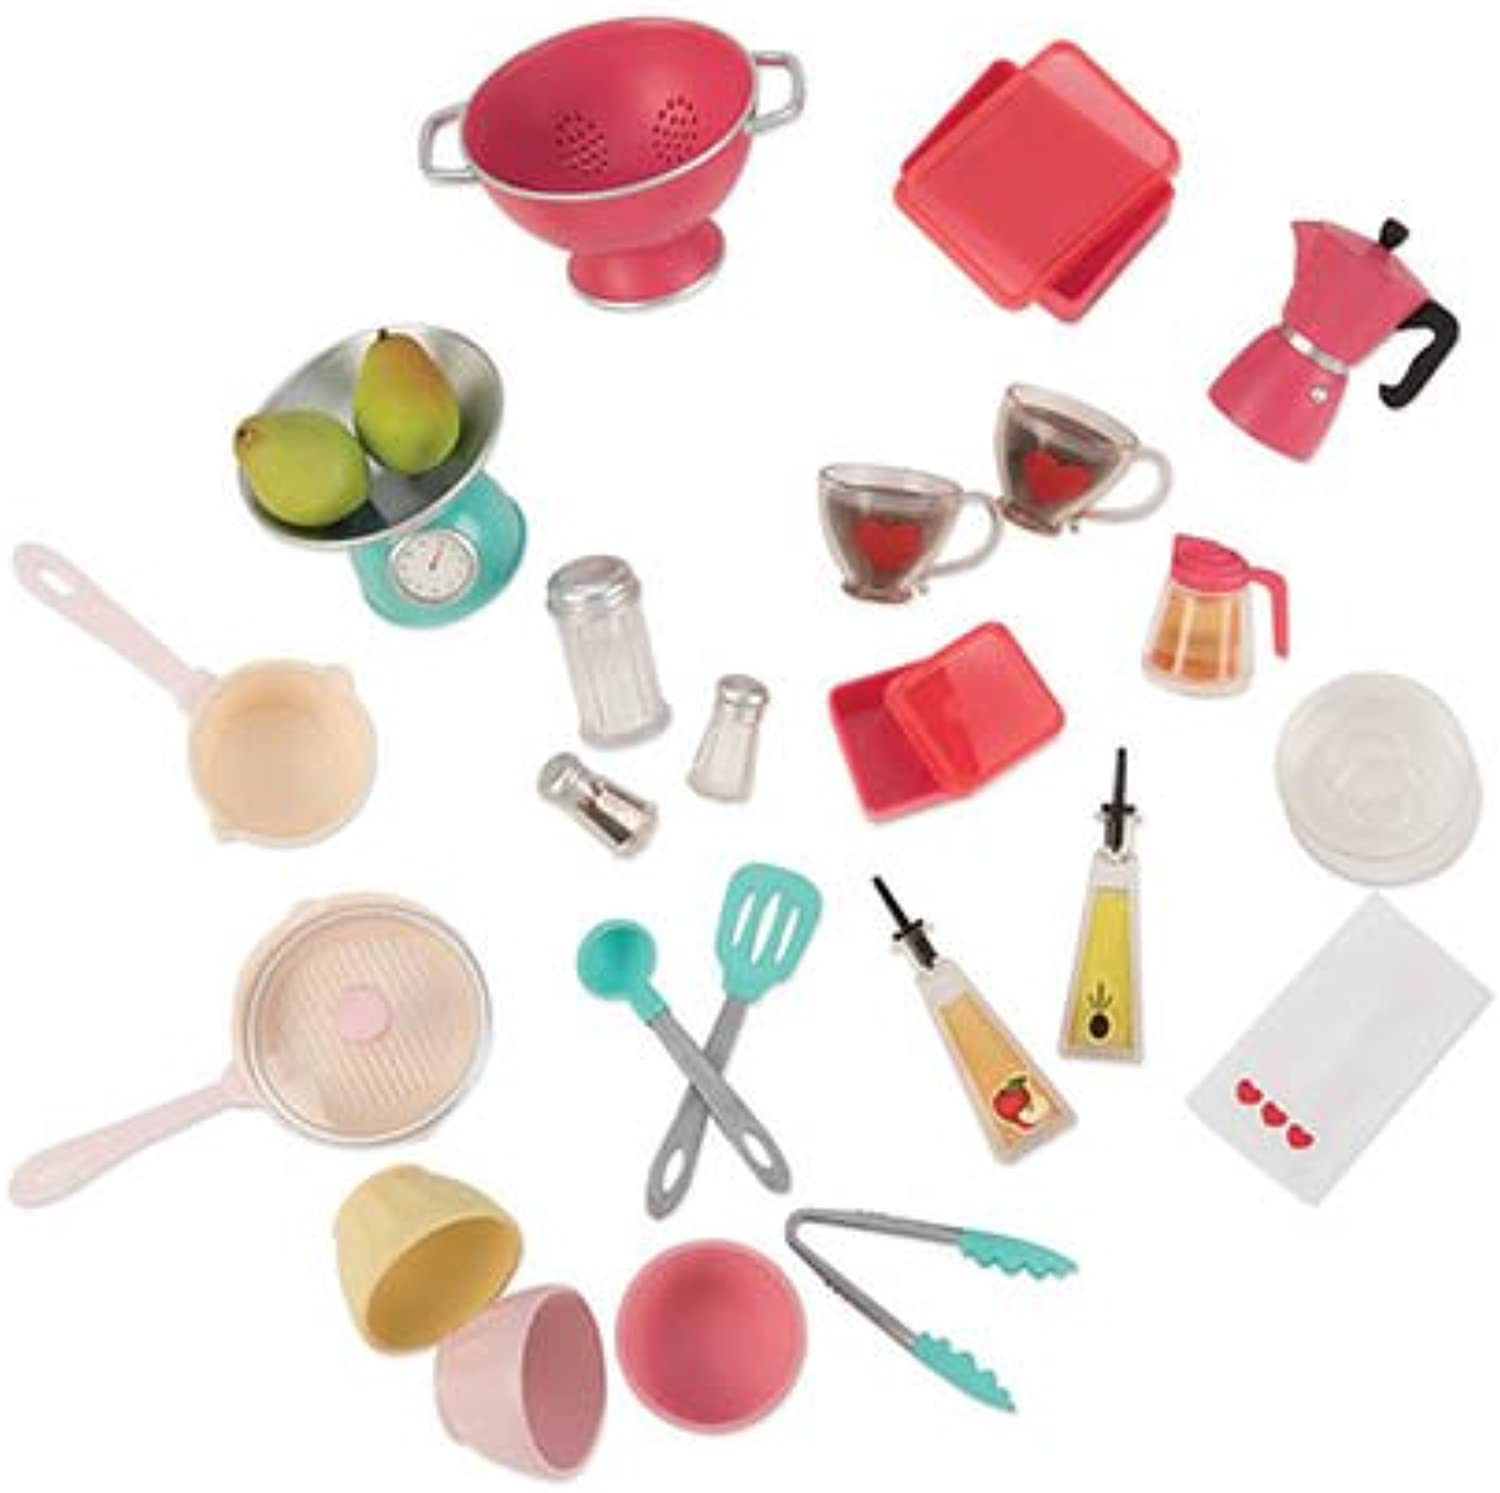 Our Generation Pegged Accessory  Cute as Pie Kitchen Playset